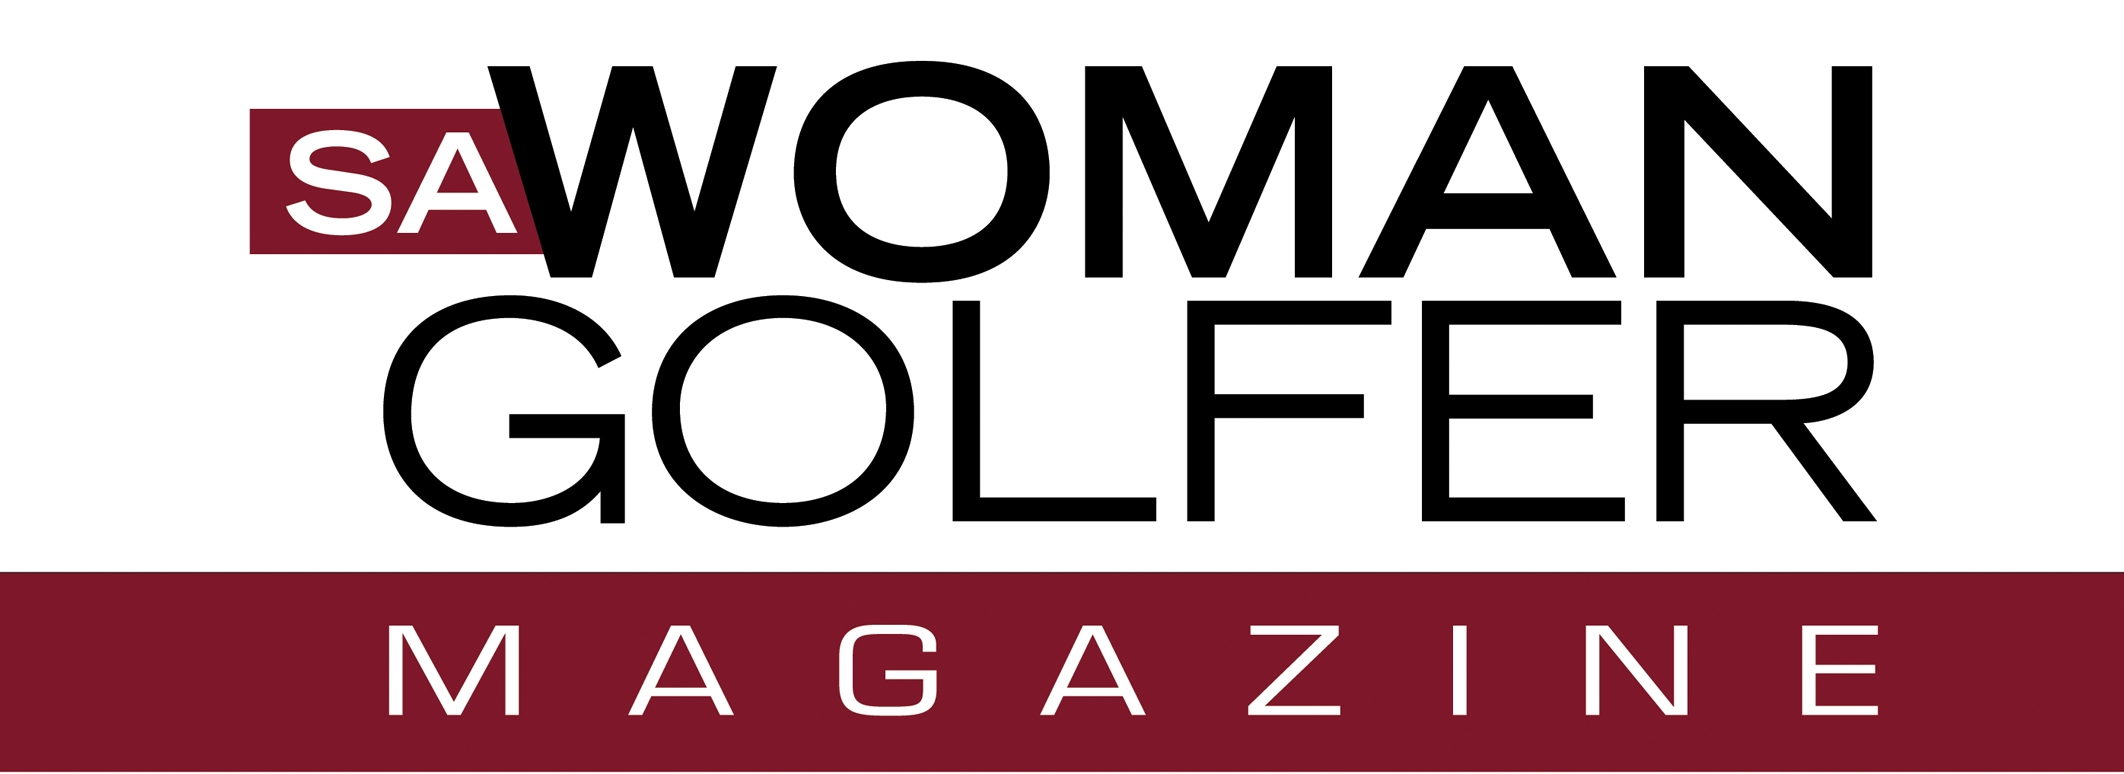 sawg magazine logo golf in the garden route south africa